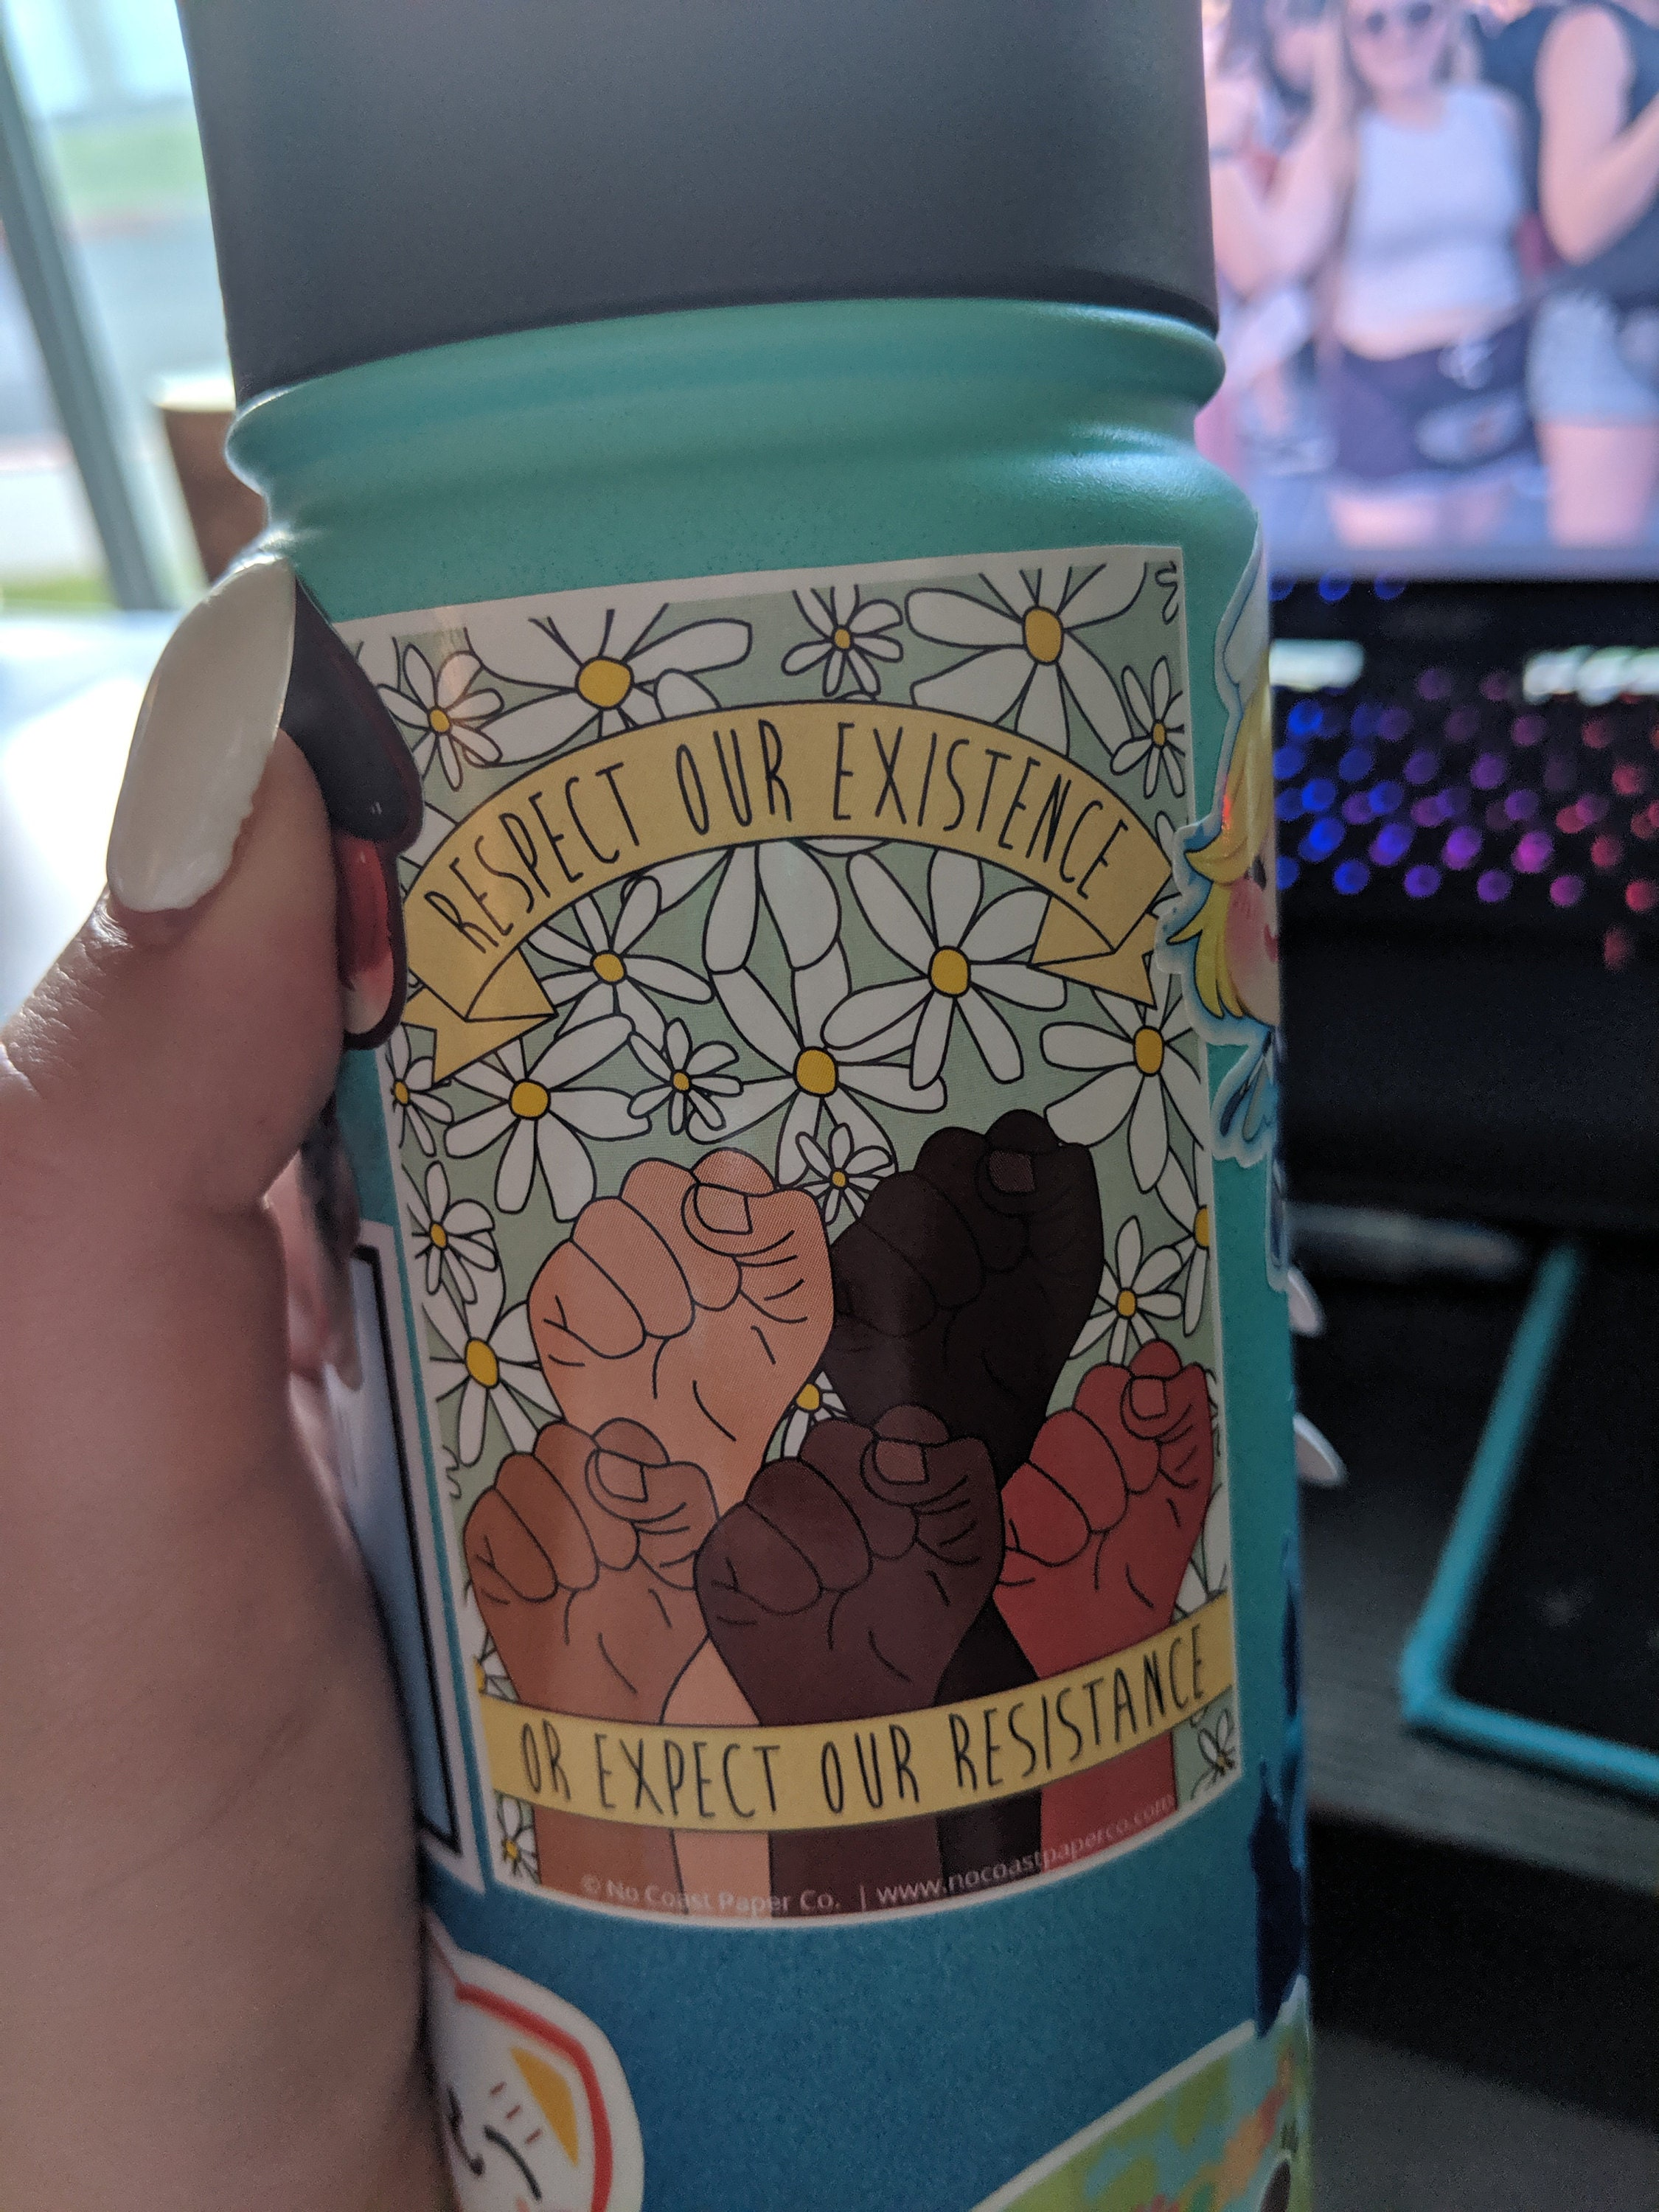 meganwells515 added a photo of their purchase